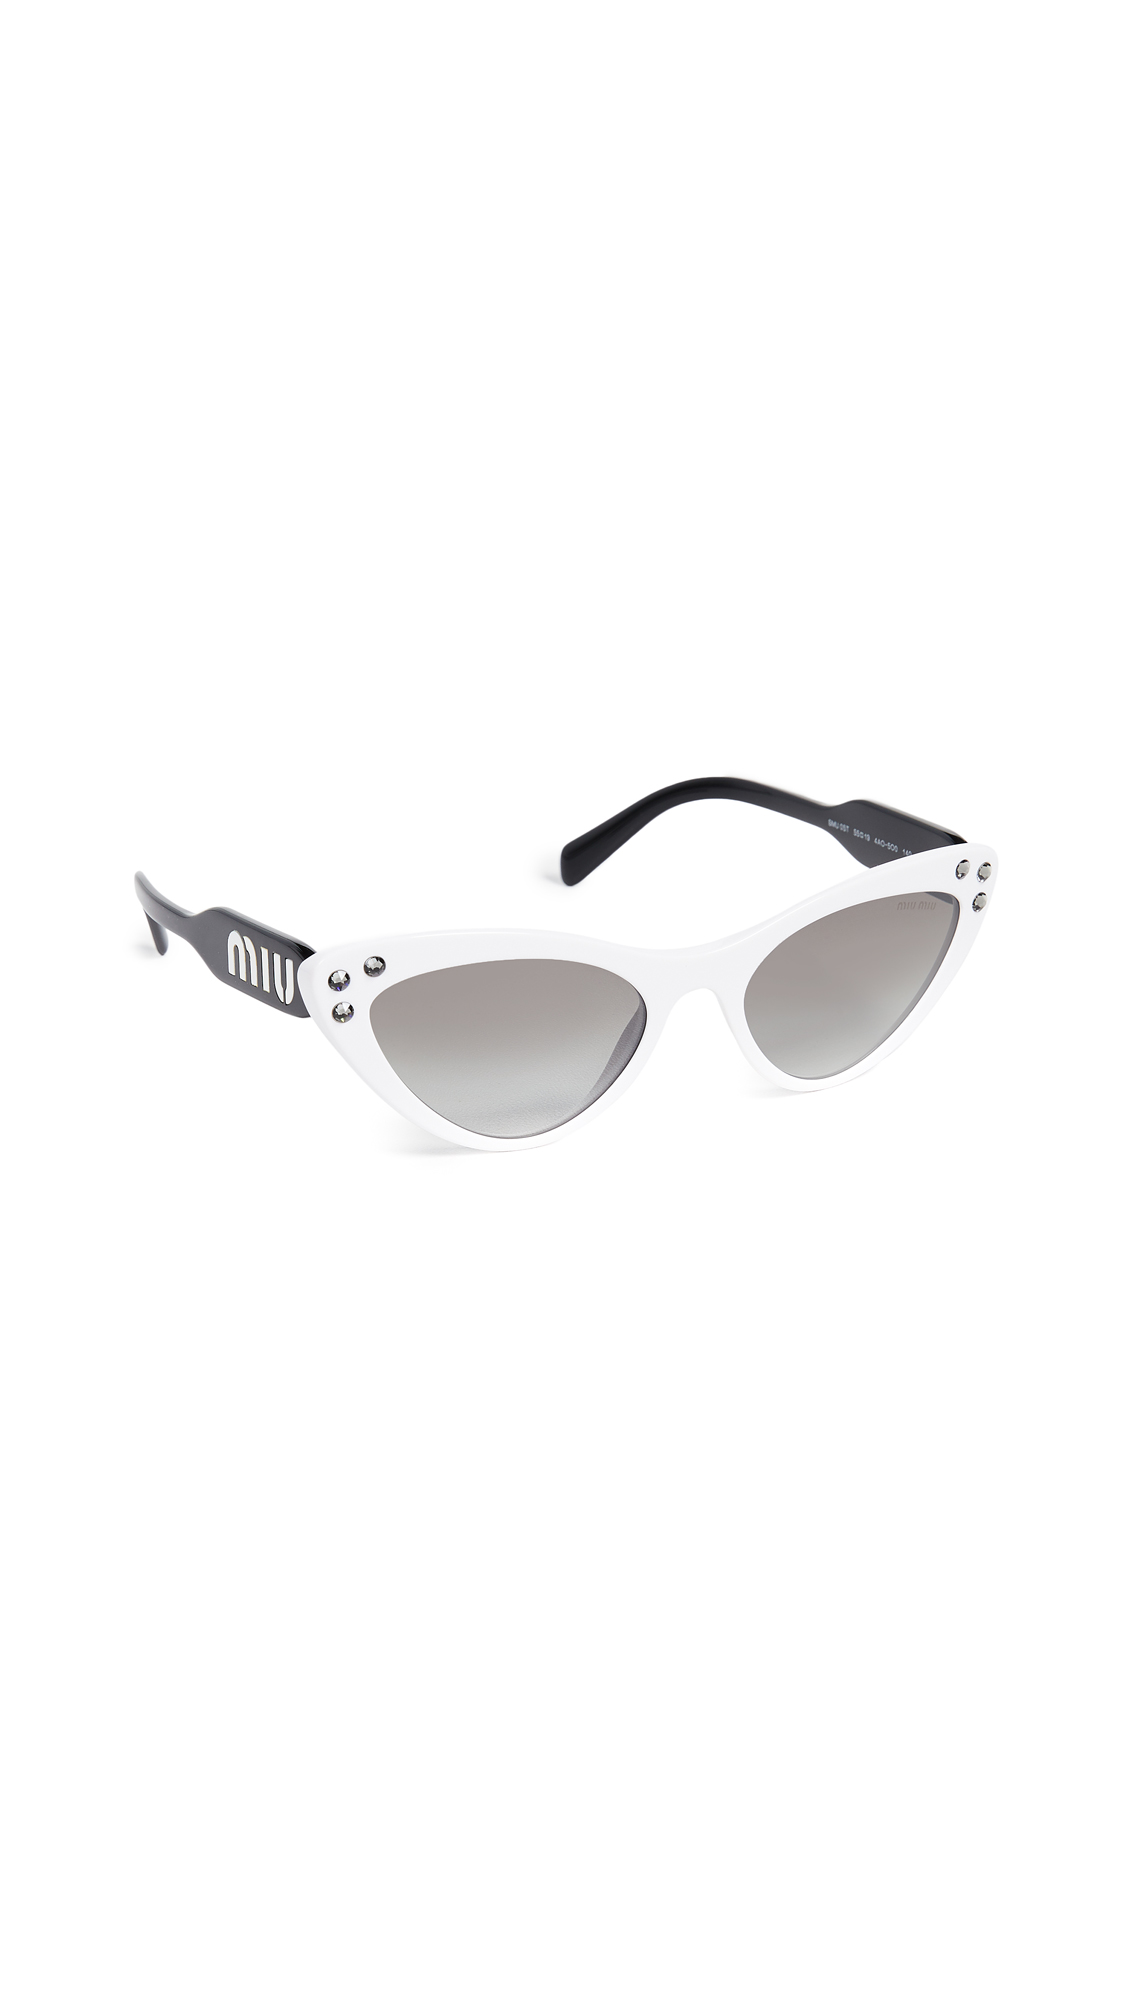 Crystals Cat Eye Sunglasses in White/Grey Mirror